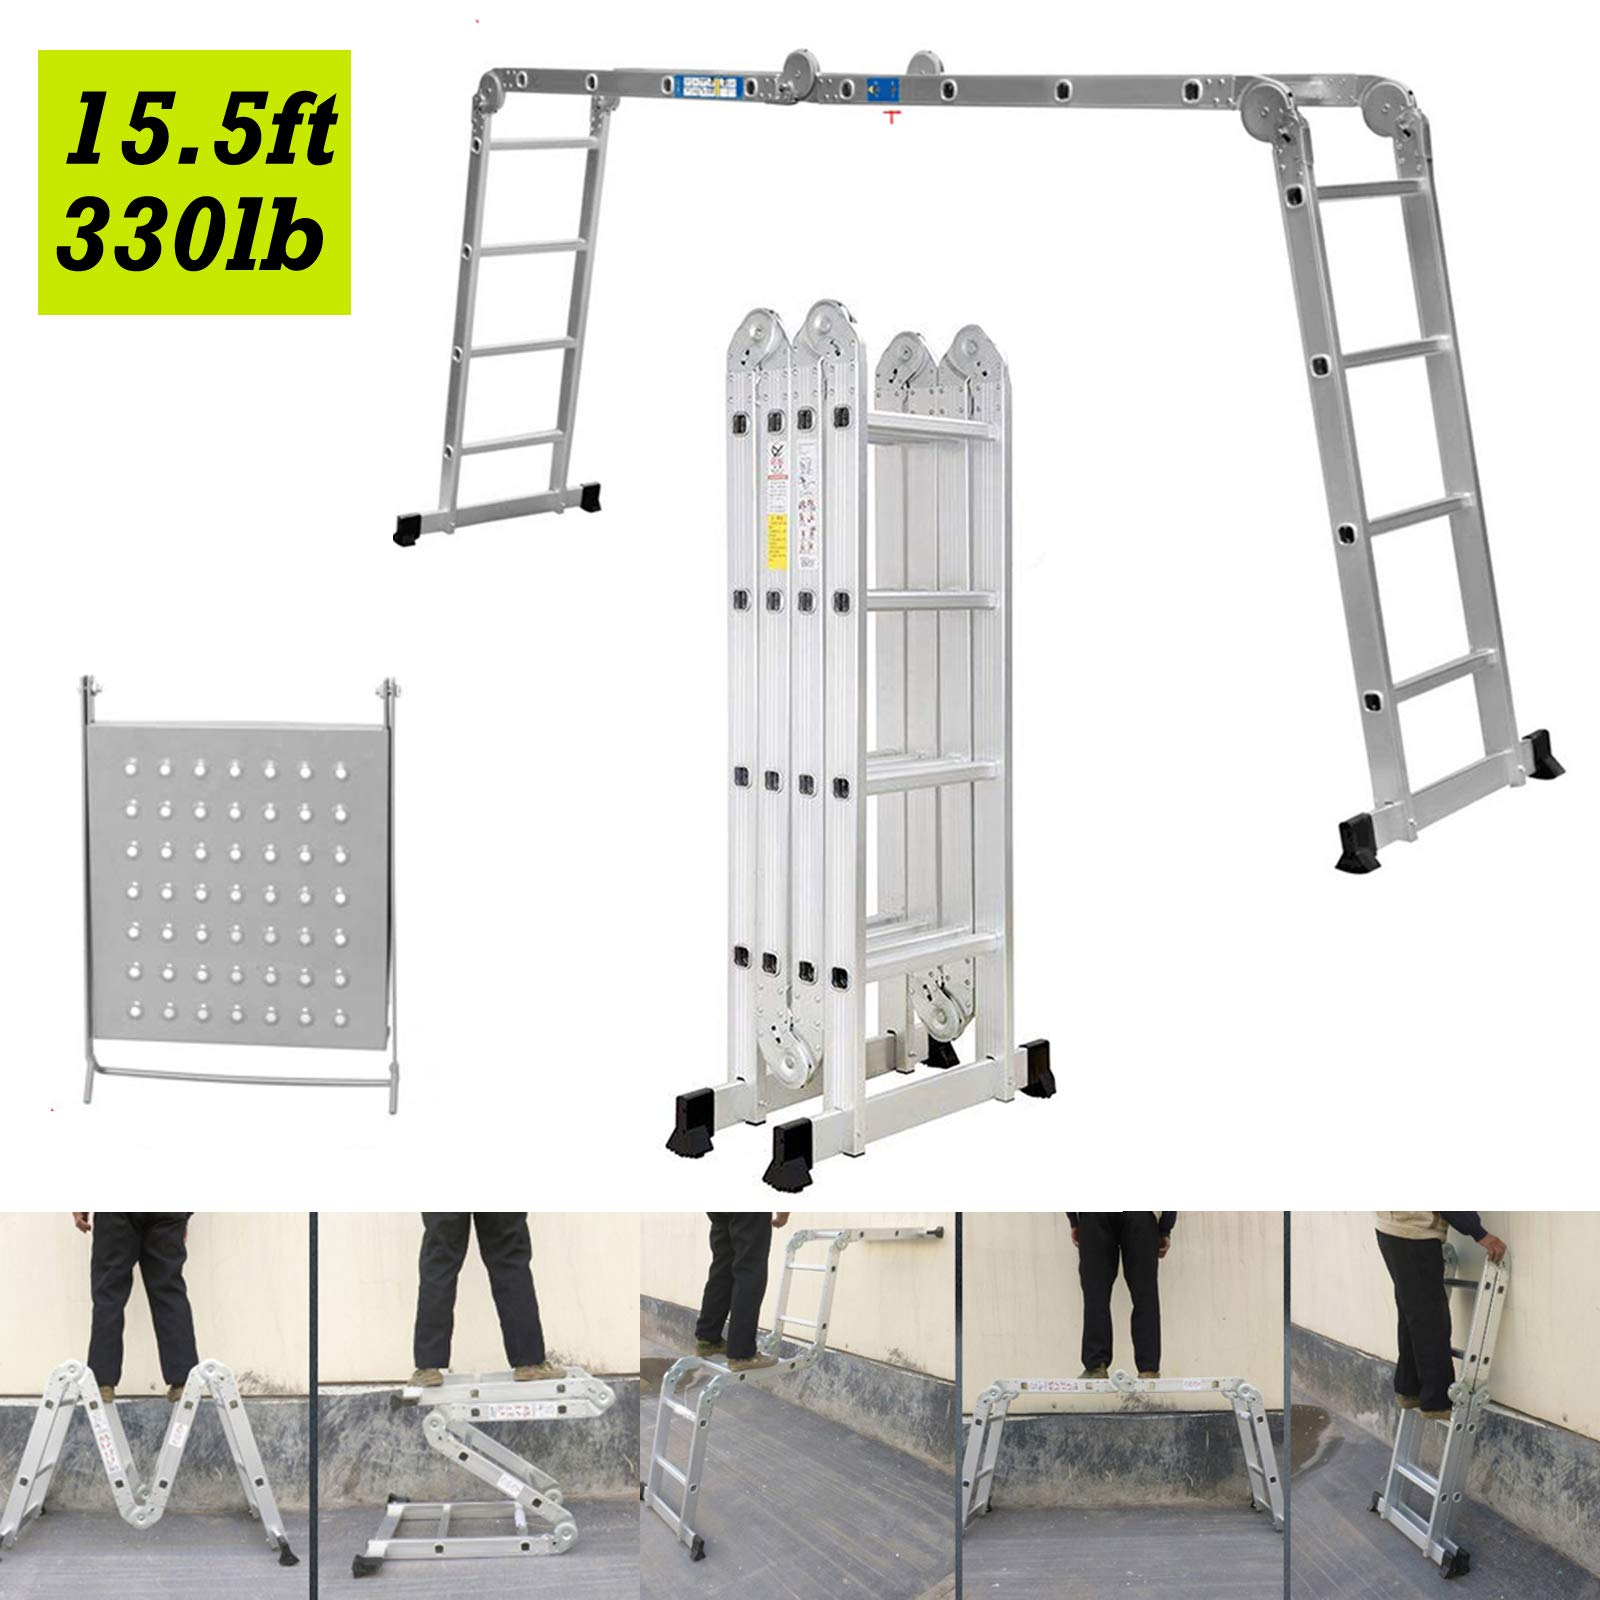 DICN Multipurpose Folding Ladder Aluminum 15.5FT 4.7M Extension Combination Scaffold Ladders 330lb Max Load + 1 Tool Tray for DIY Builder Work Decoration Indoor Outdoor